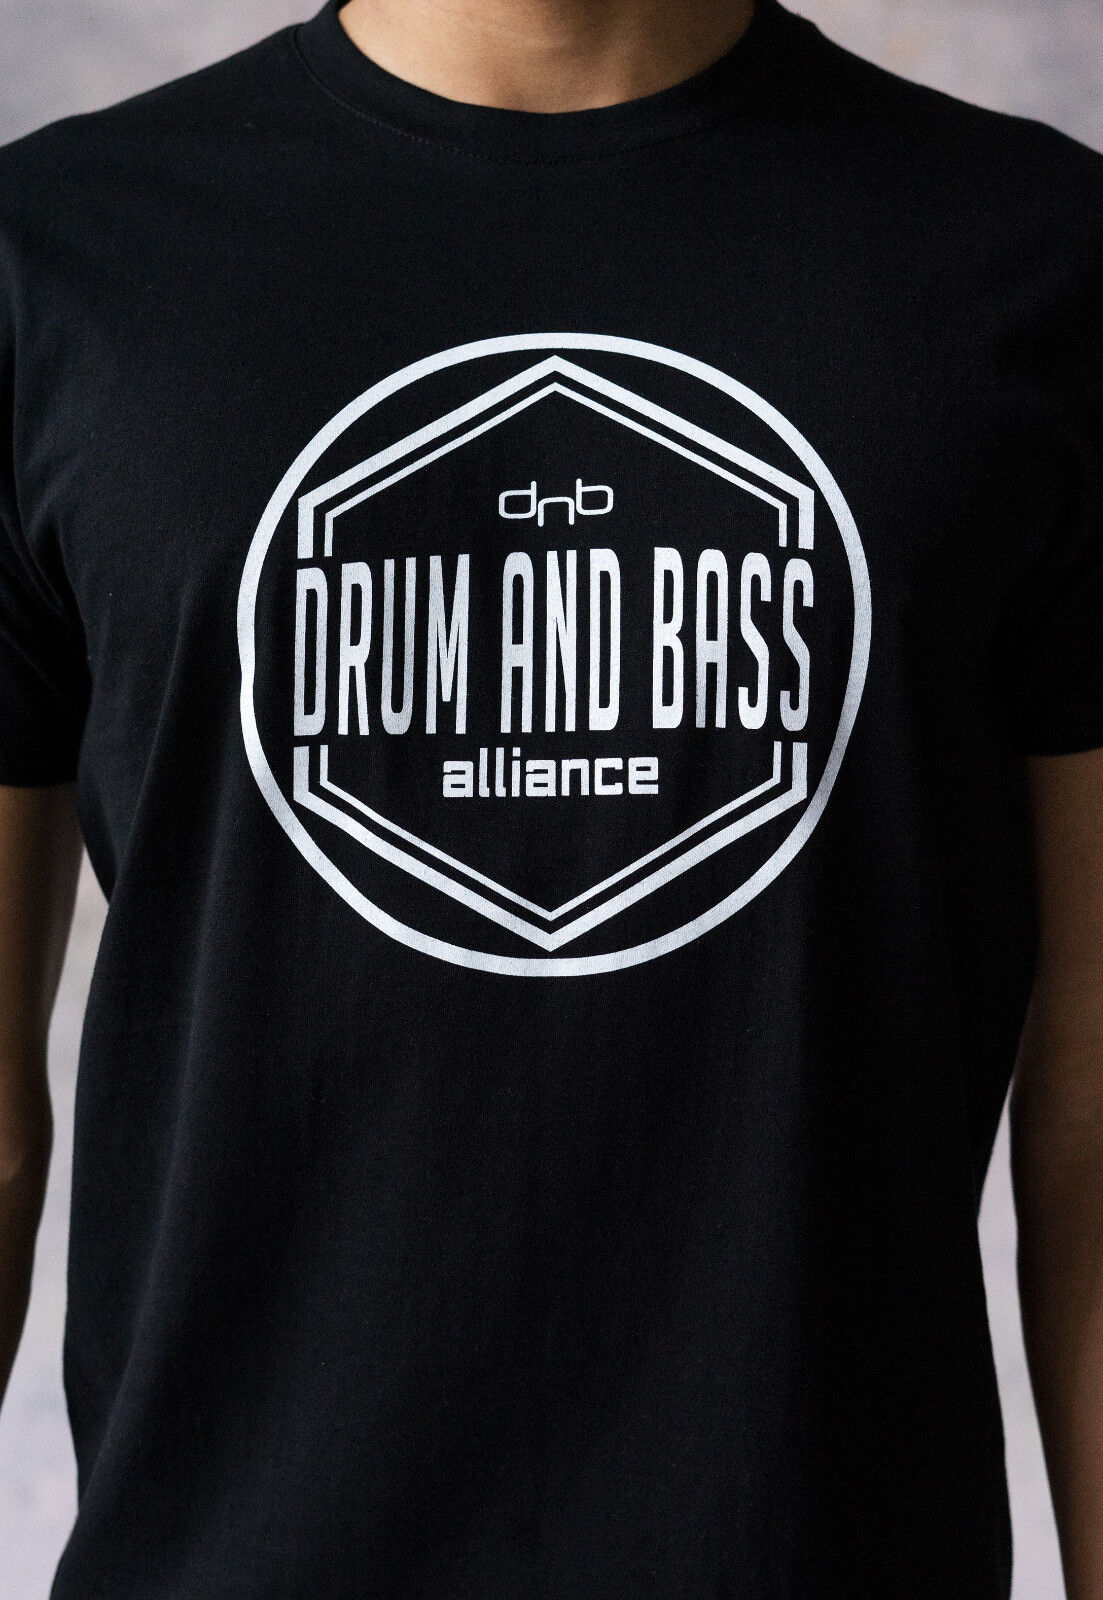 Drum and Bass Alliance T Shirt DnB DJ Jungle & Neurofunk Junglist Amen Mens Tee